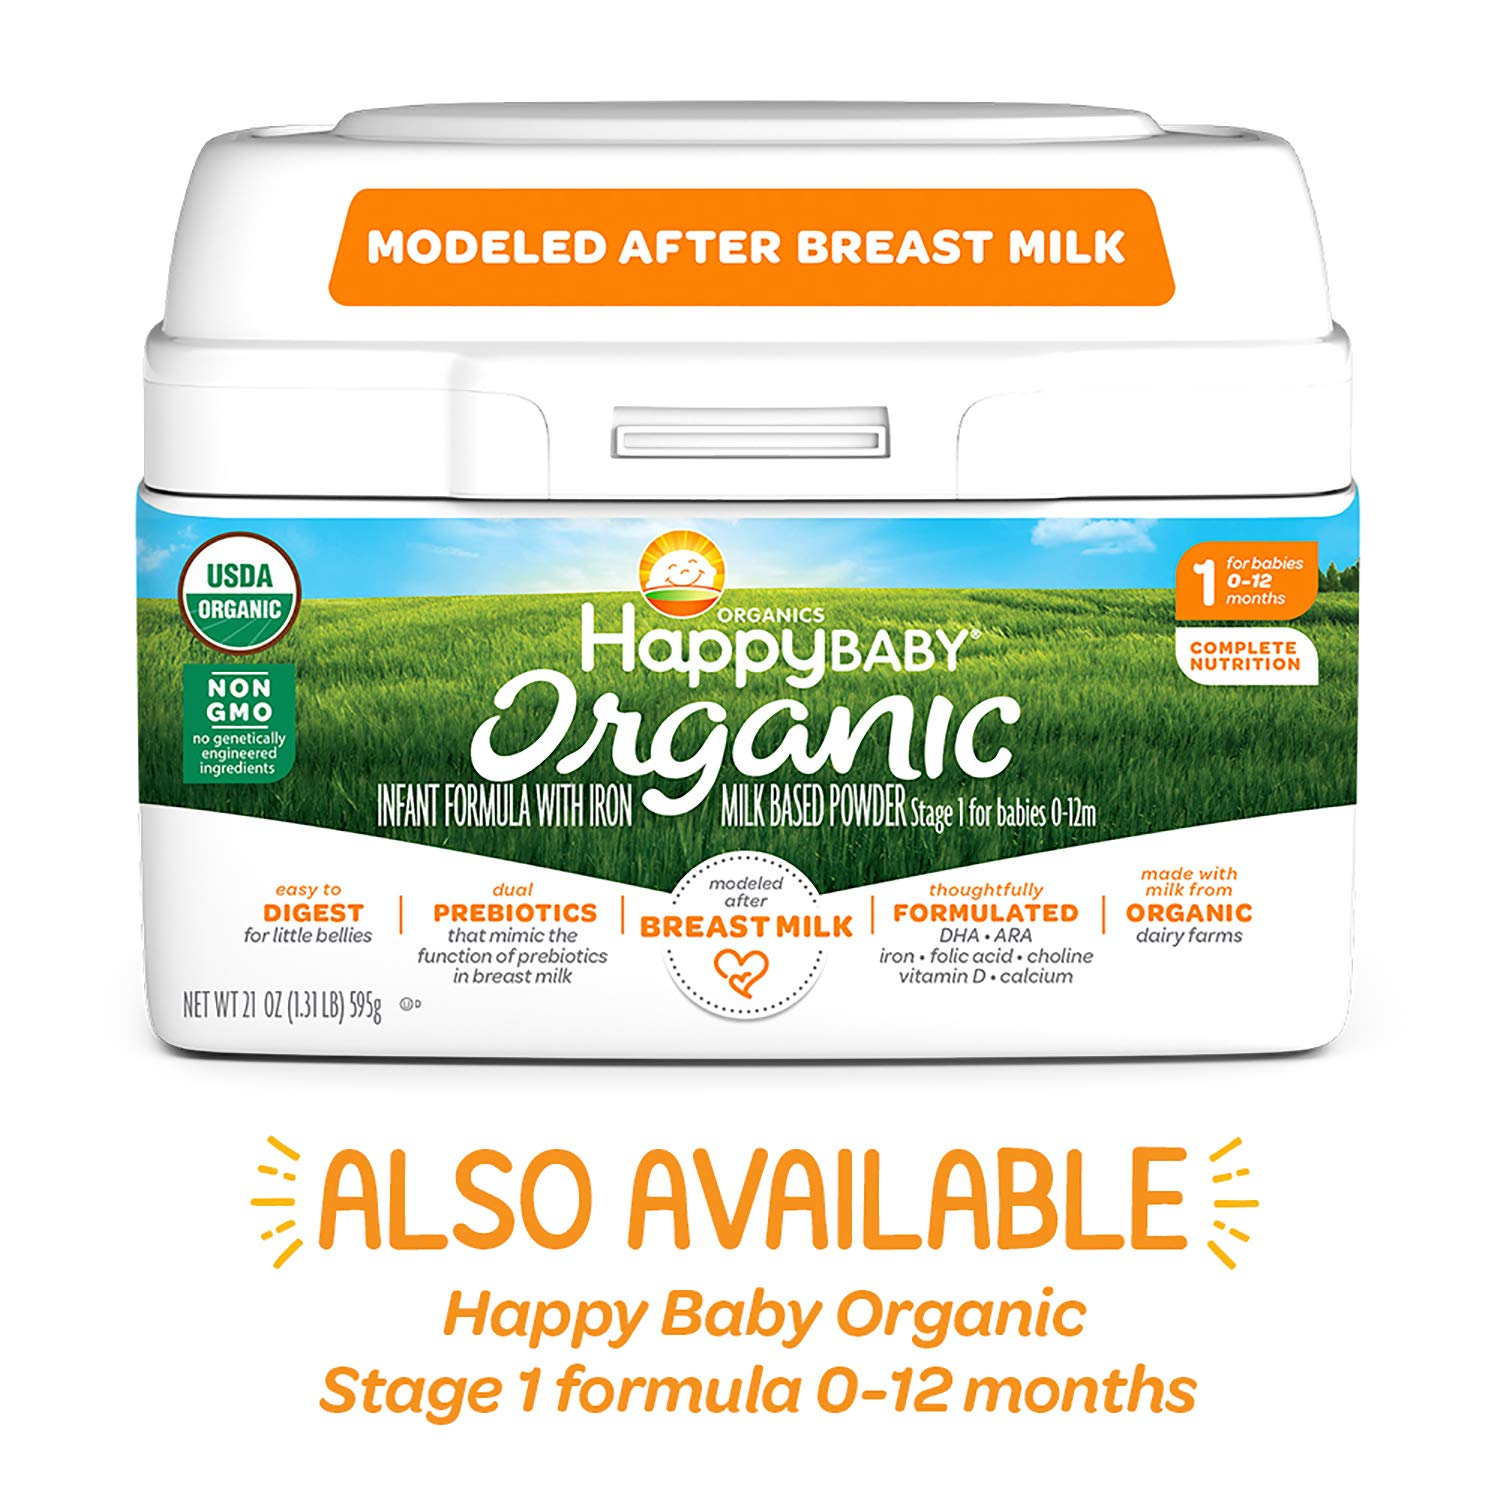 Happy Baby Organics Infant Formula, Milk Based Powder with Iron Stage 2, 21 Ounce (Pack of 1) packaging may vary